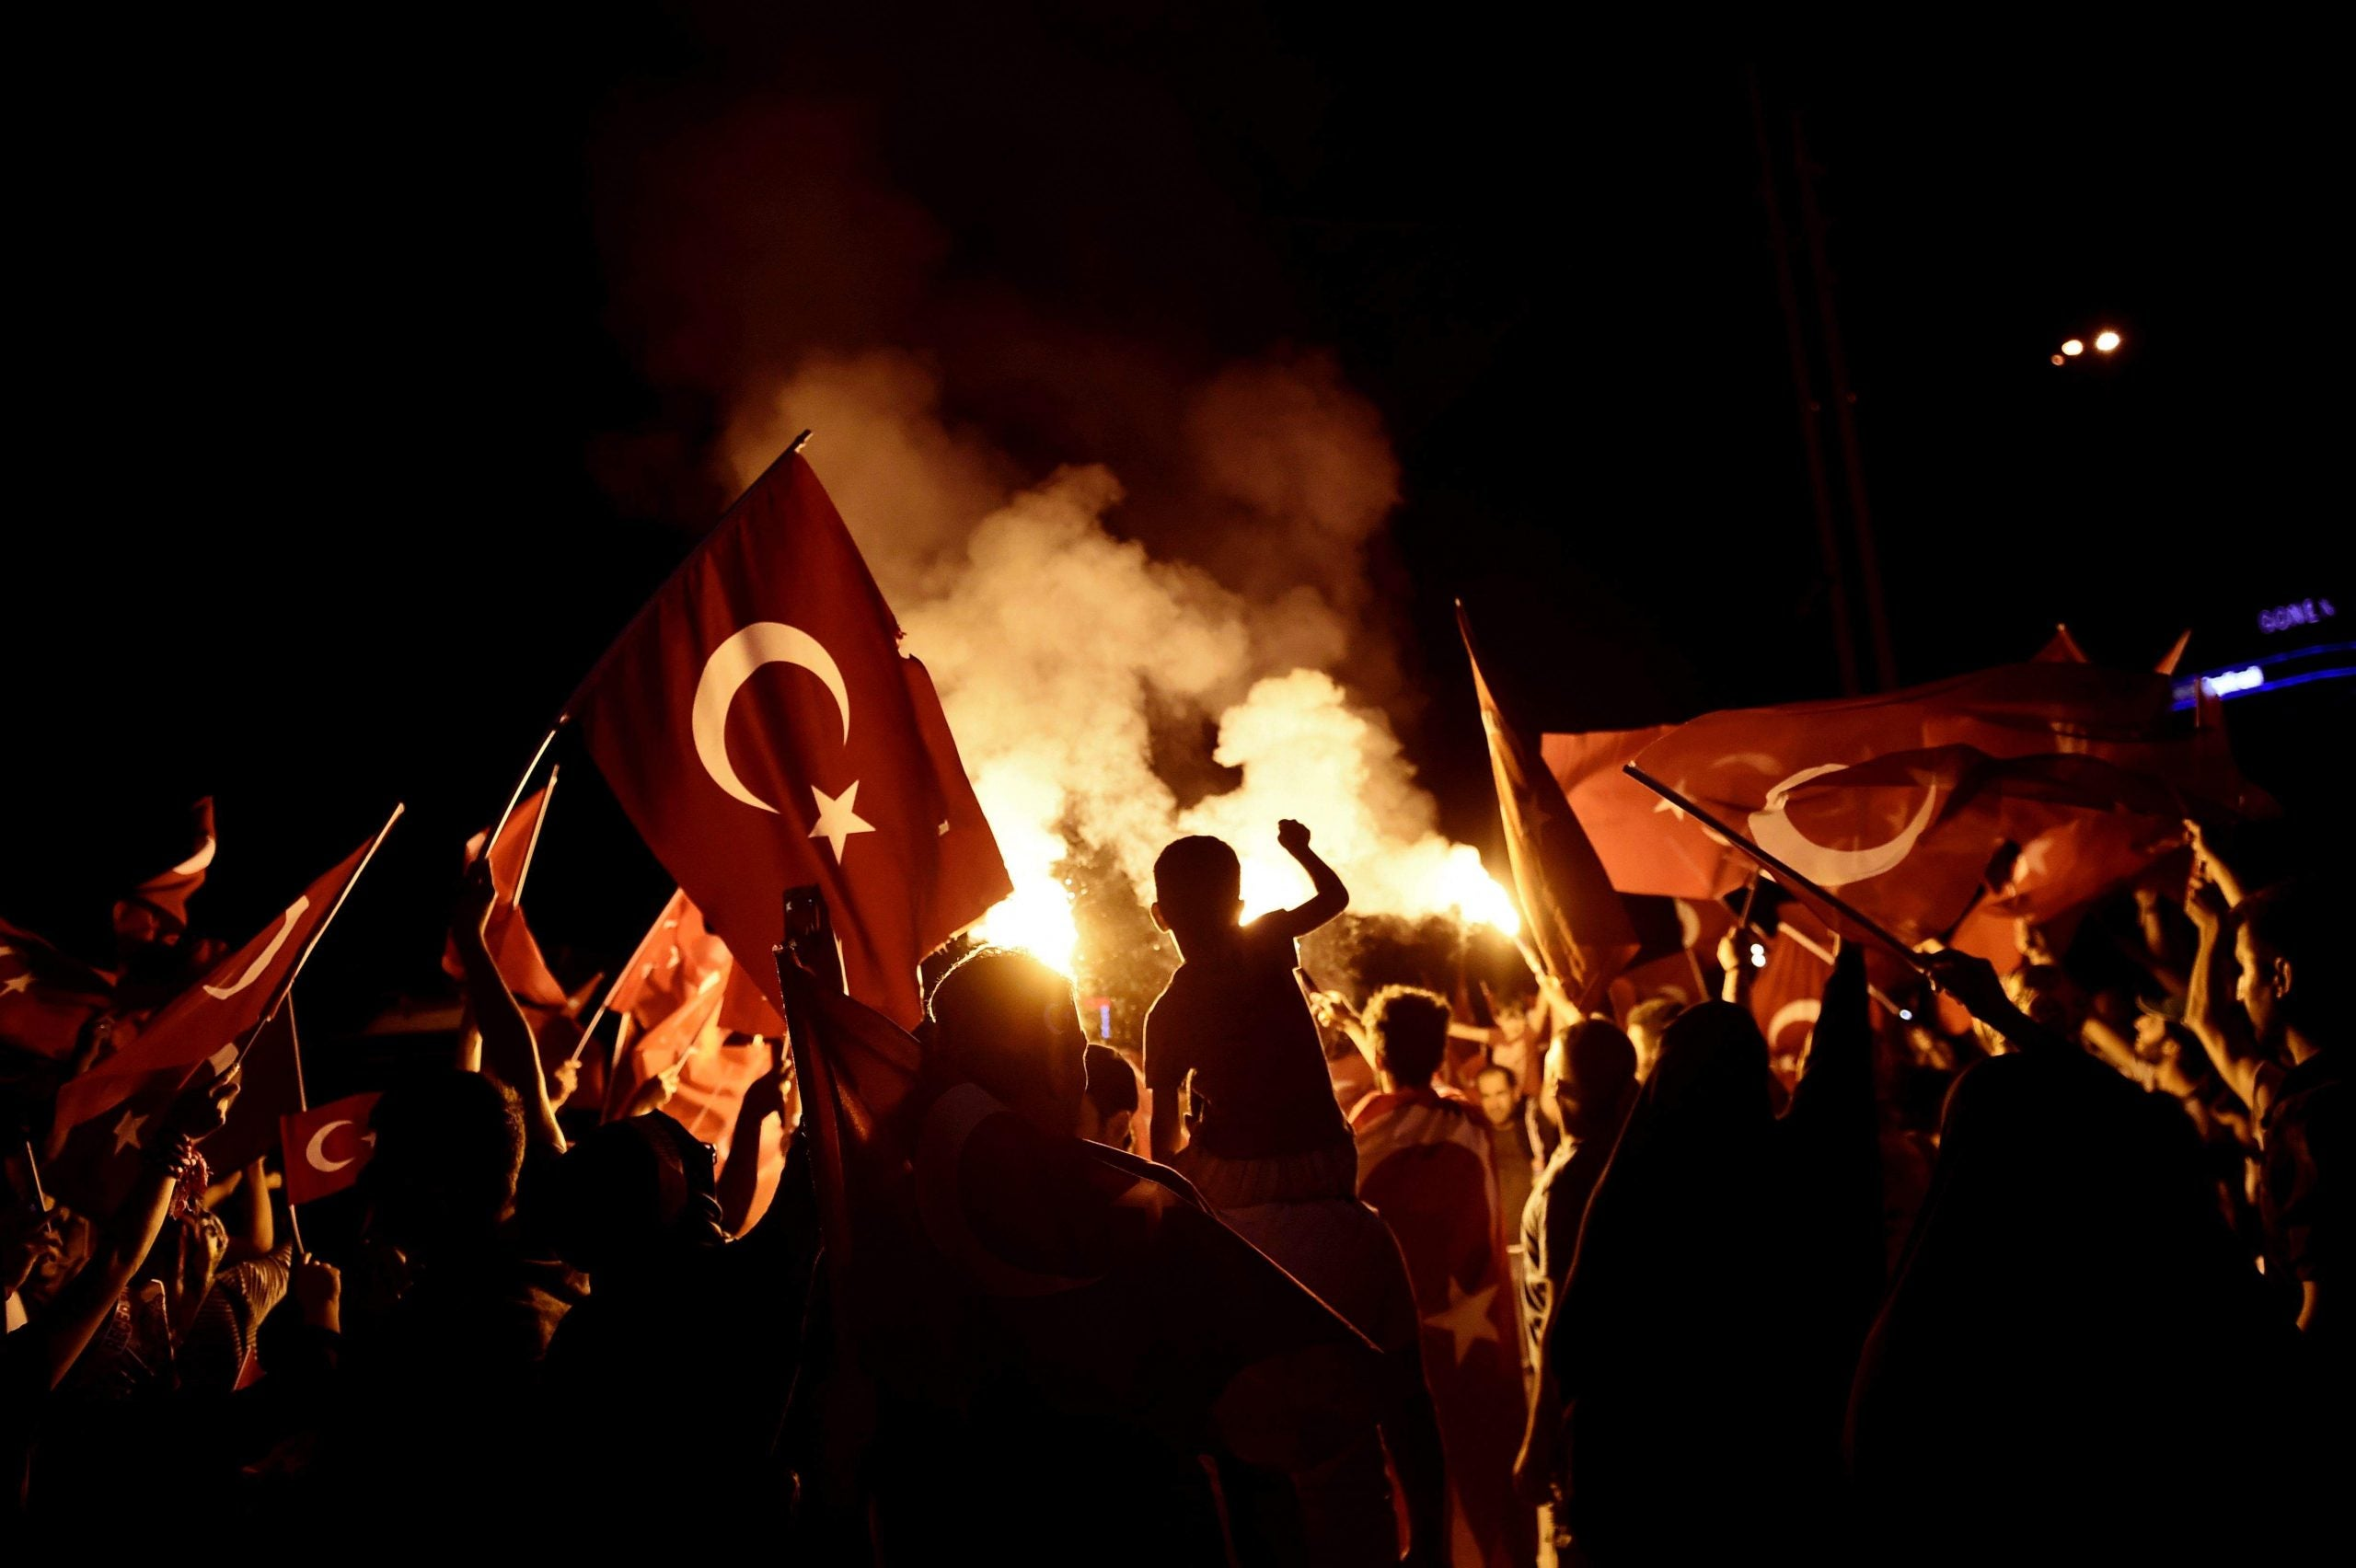 A year after the failed coup in Turkey, the purge goes on